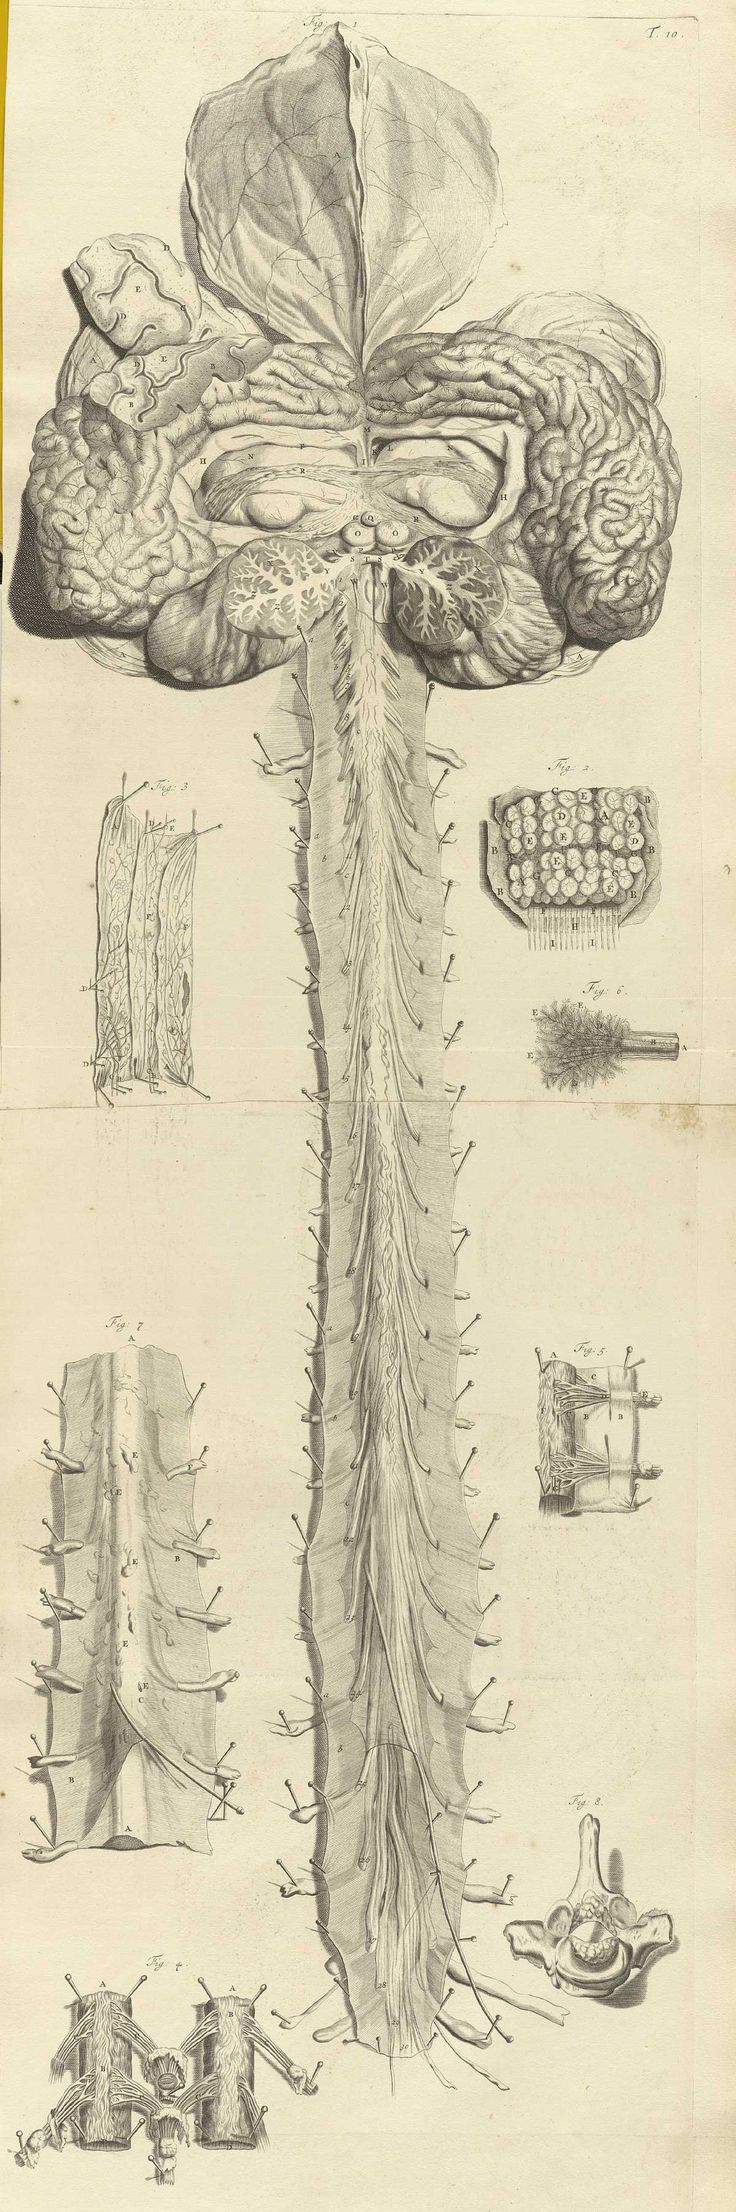 the spinal cord, by Govard Bidloo, from Ontleding des menschelyken lichaams, 1690.